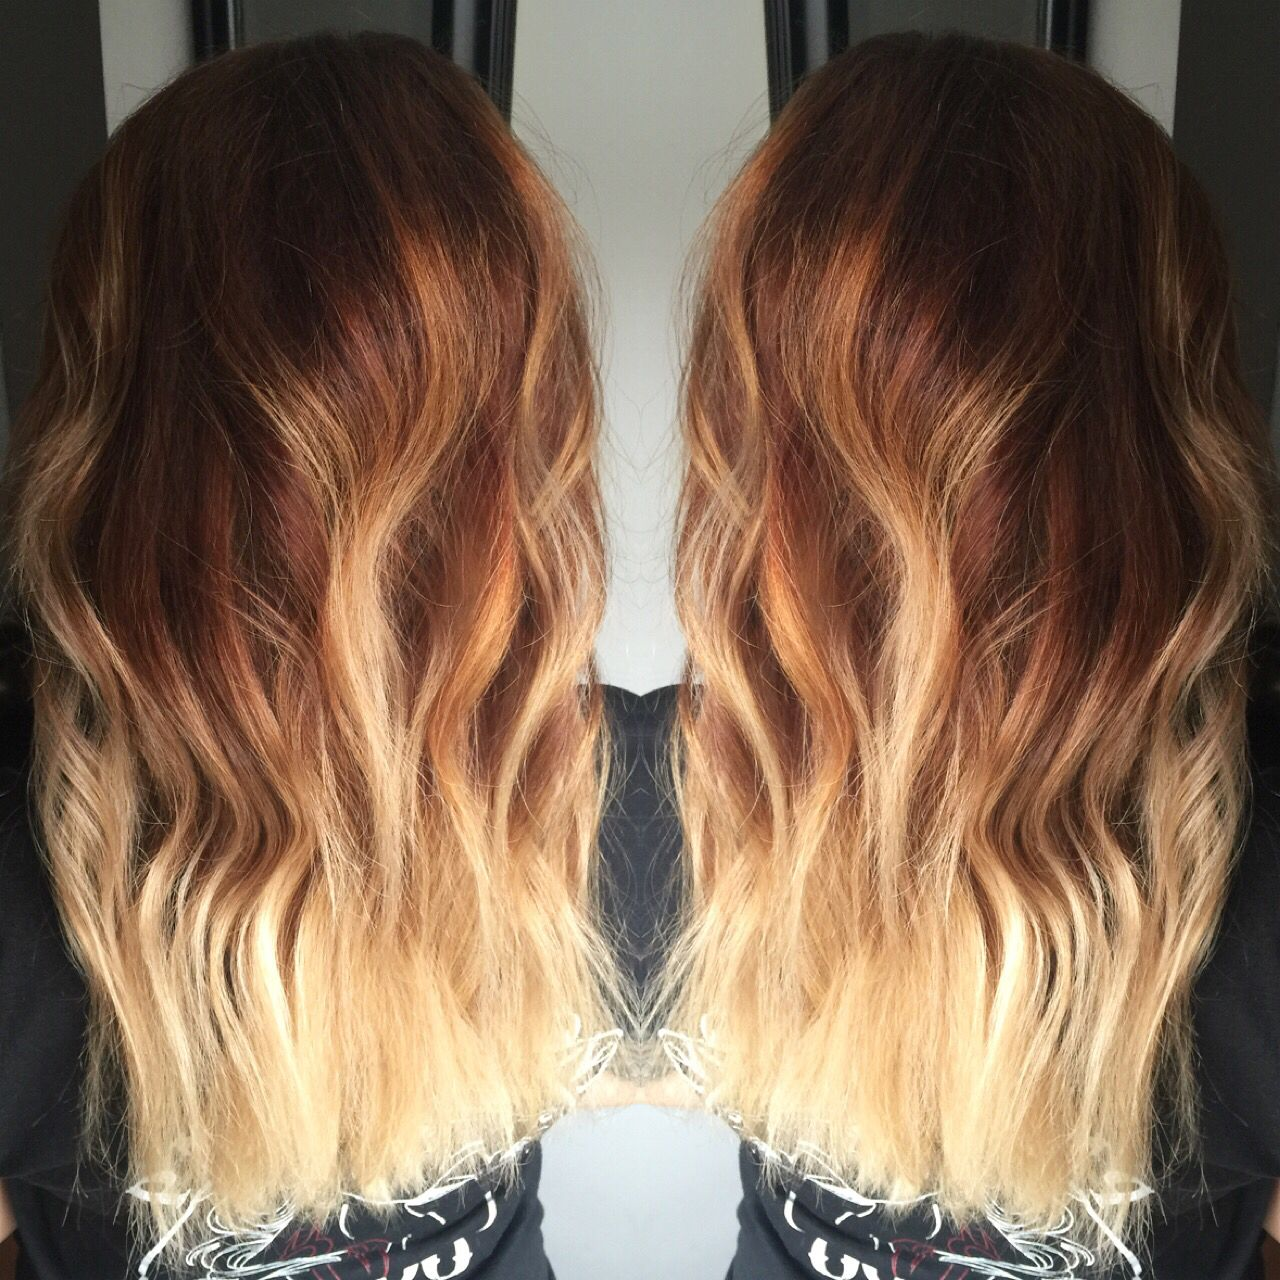 Pin By Brooklyn Siever On Hair And Beauty Hair Beauty Long Hair Styles Ombre Balayage